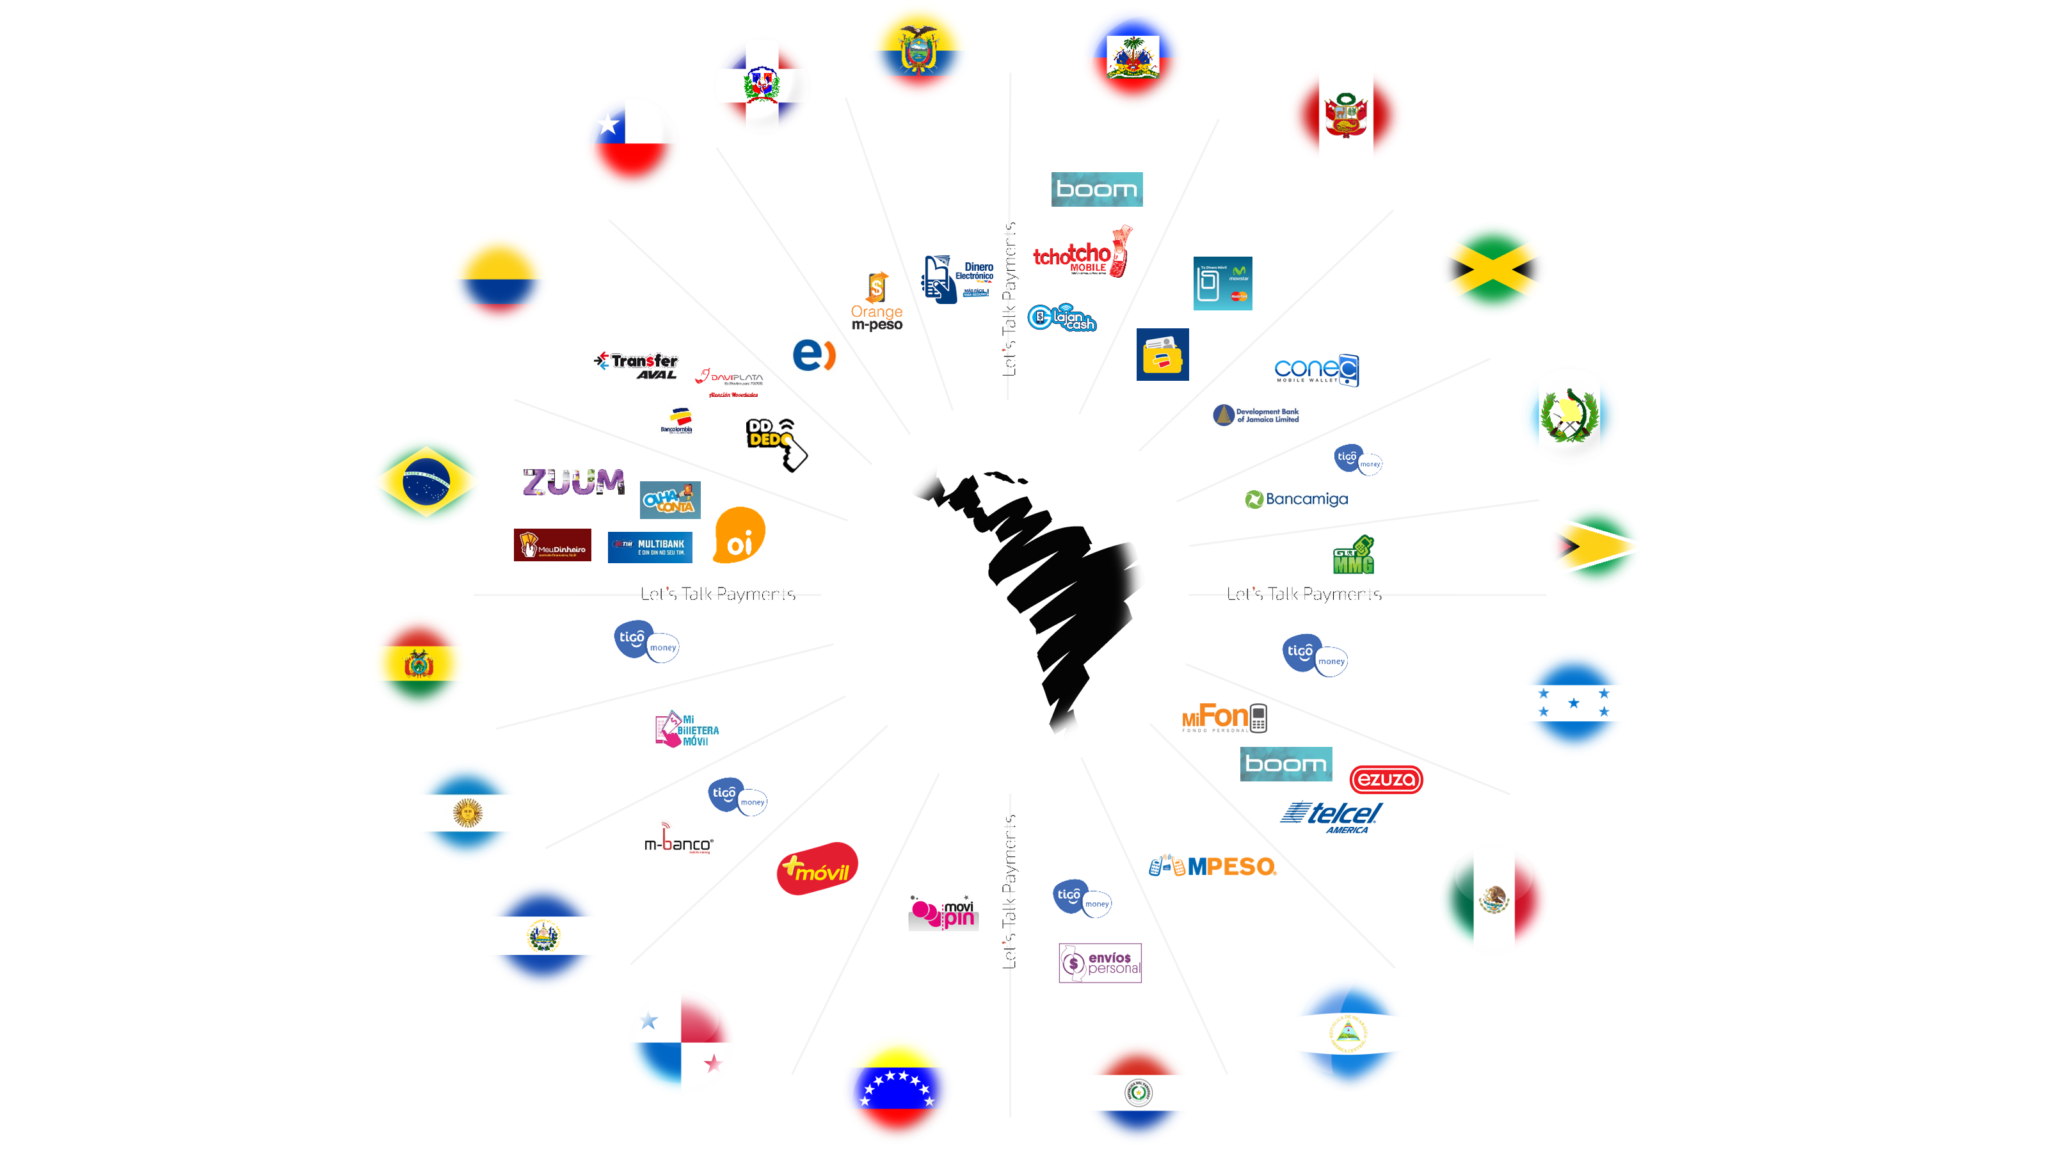 mobile money in latin america